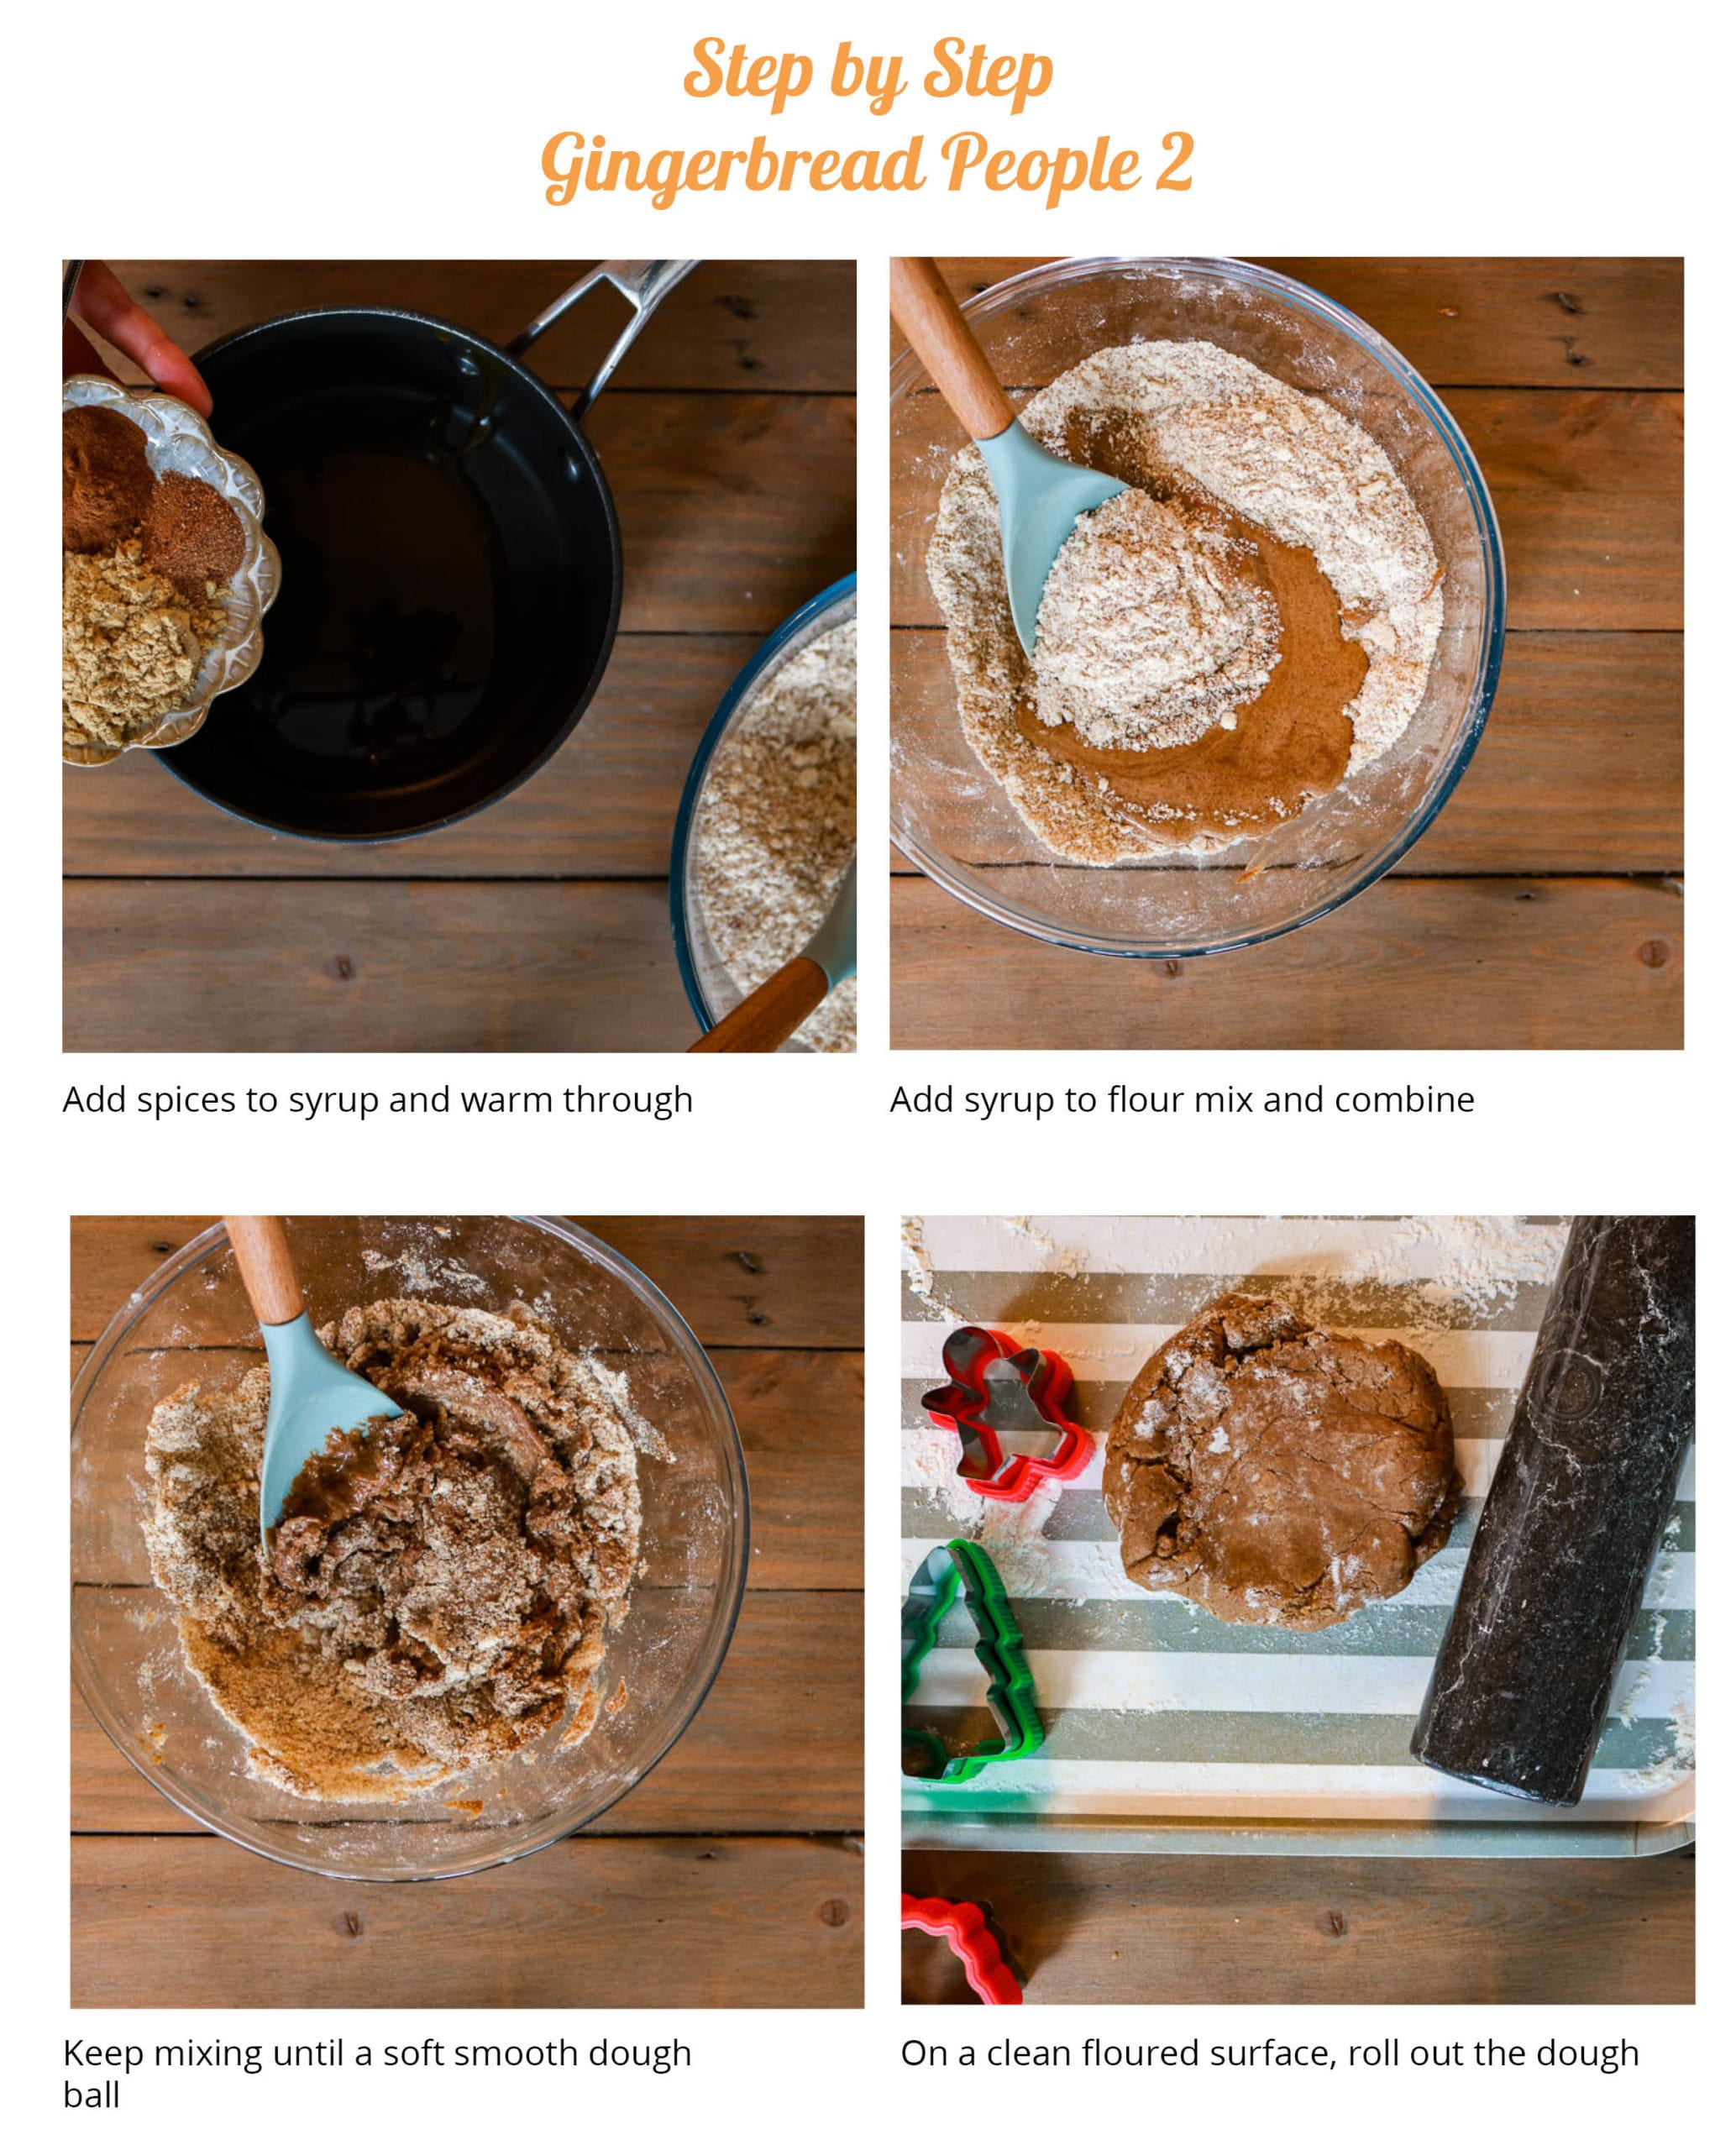 How to make vegan gingerbread people step by step